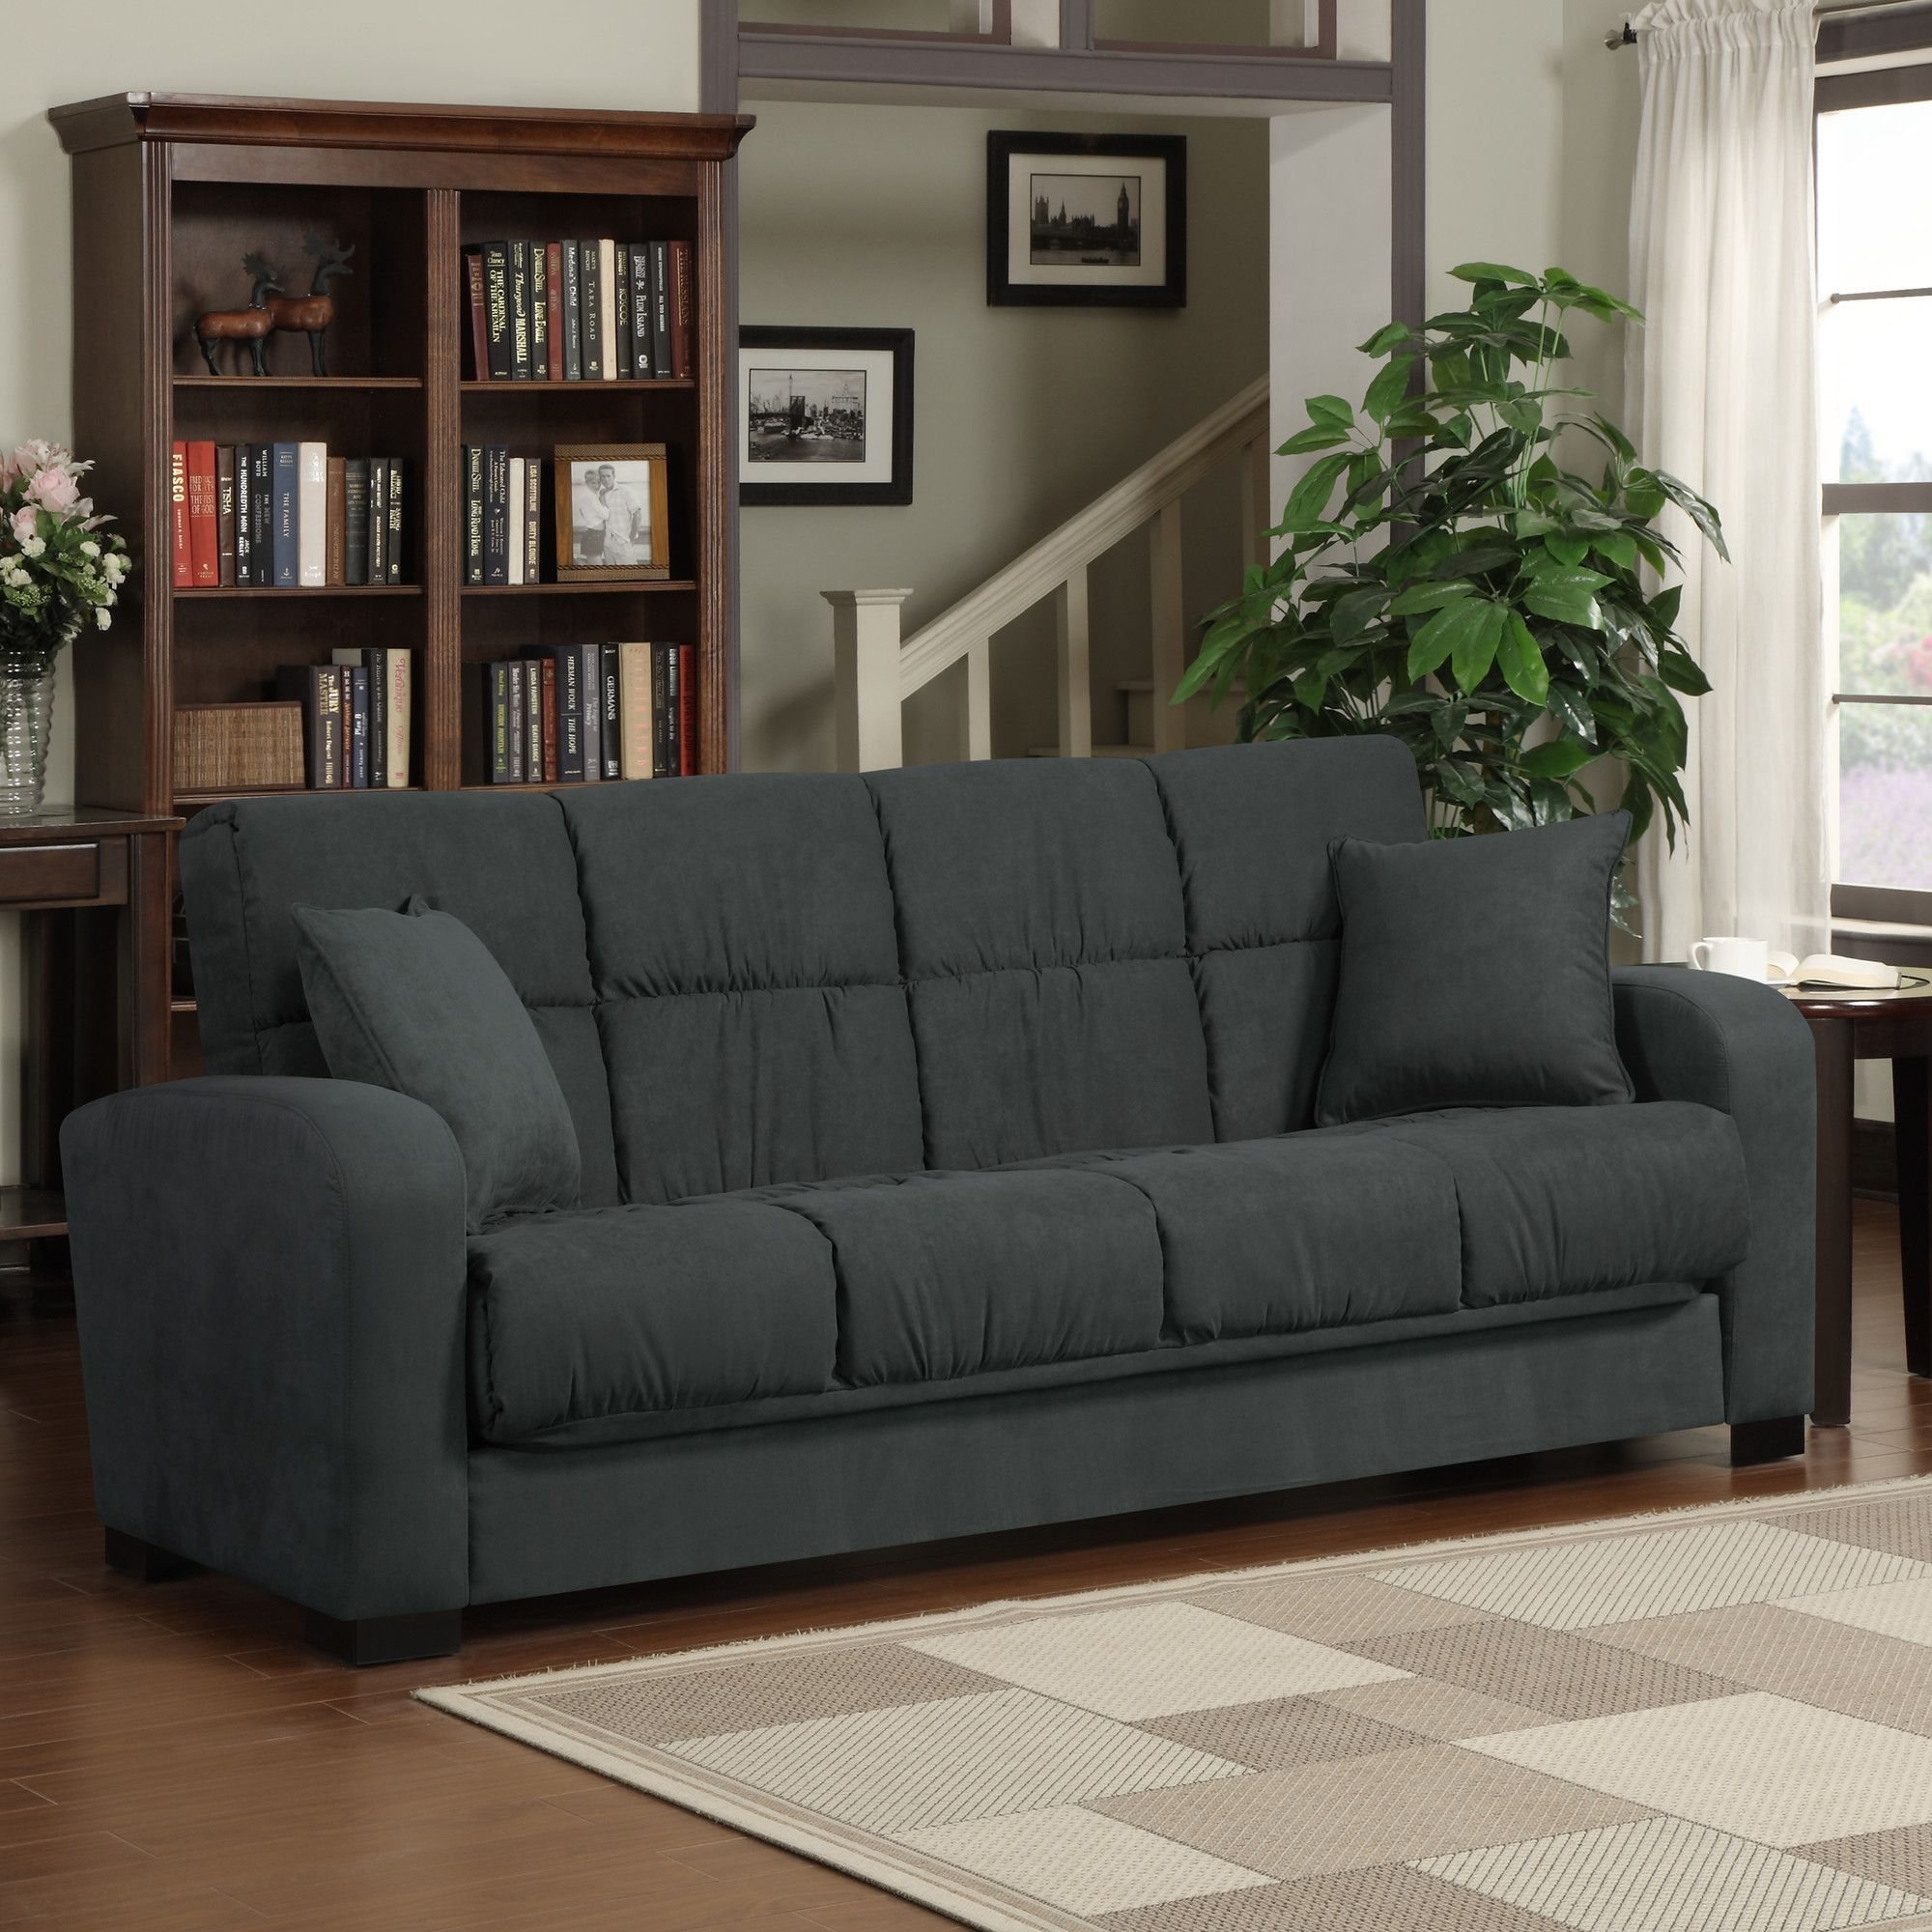 Timothy convertacouch full convertible sleeper sofa products